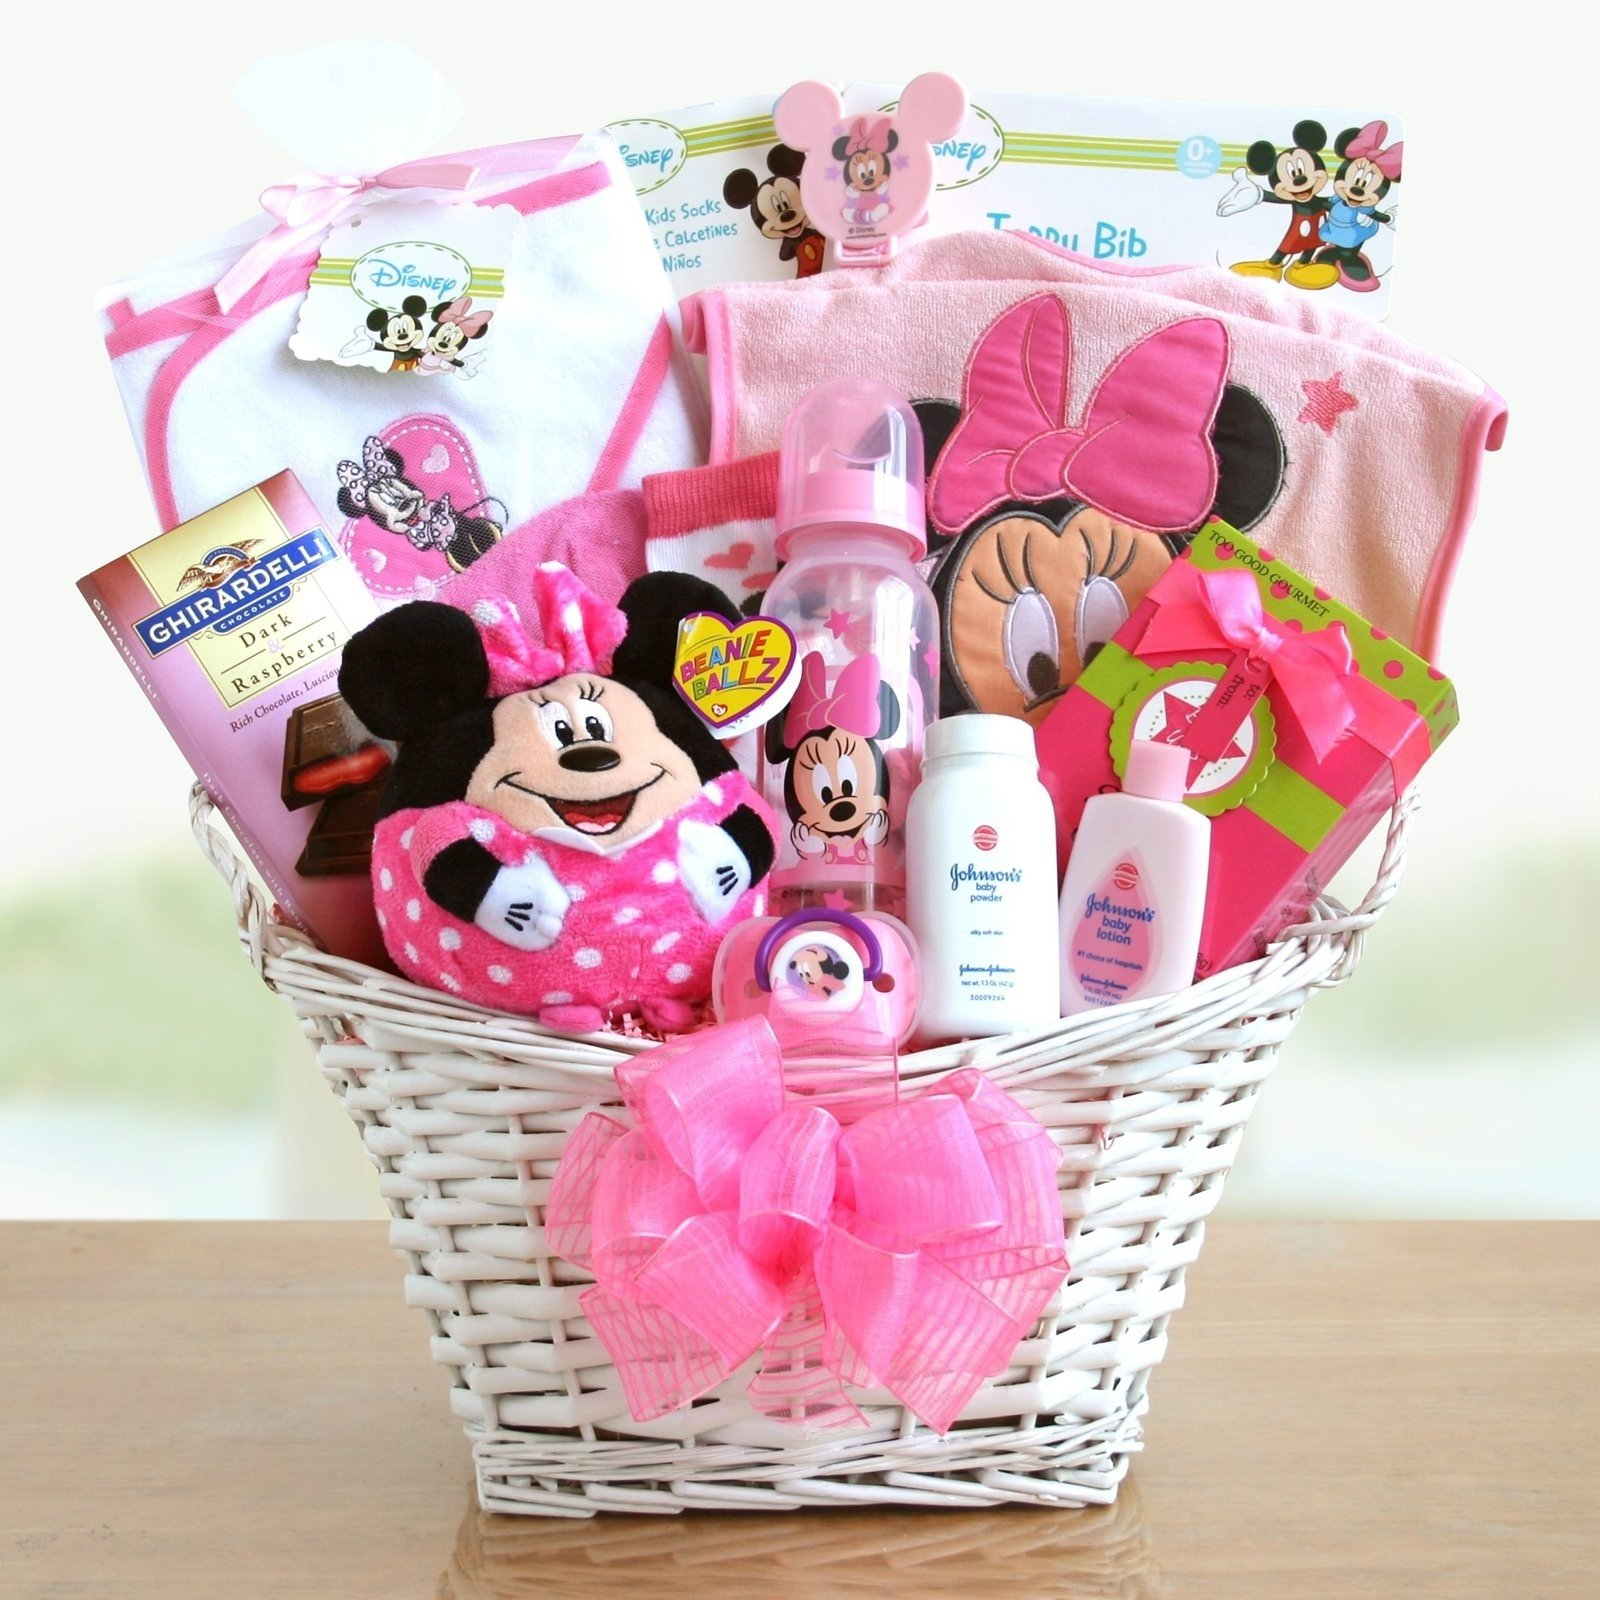 10 Lovable Baby Girl Gift Basket Ideas minnie mouse baby girl gift basket hayneedle